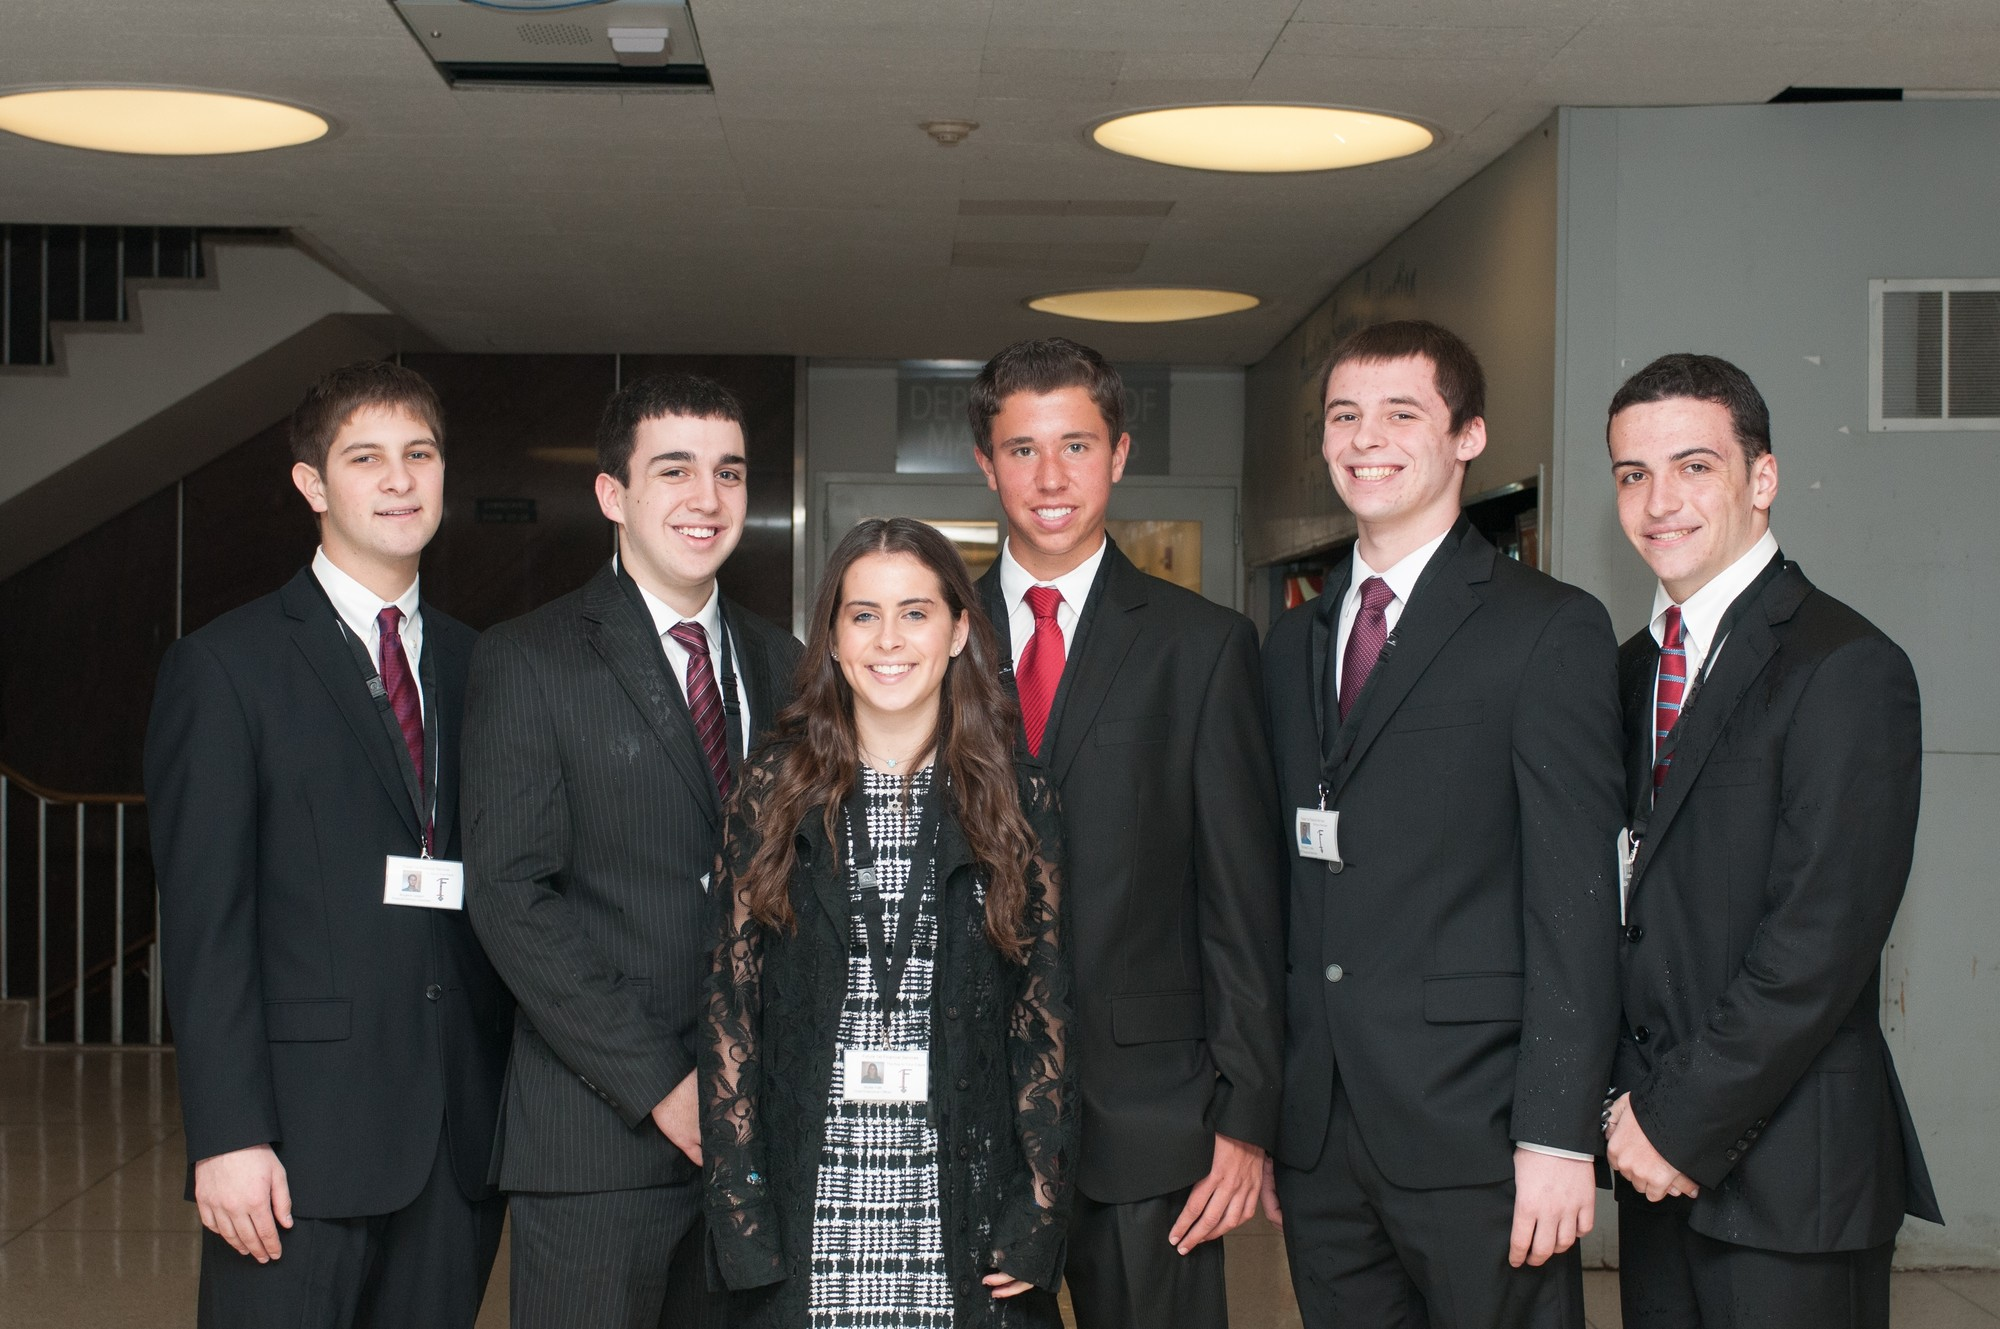 Future 1st Financial Services was one of two Hewlett High virtual enterprise teams that earned a spot in the National Business Competition in New York City. From left were Ben Lampert, Michael Kornfeld, Mollie Falk, Michael Kreisman, Richard Lyons and Tyler Kenny.